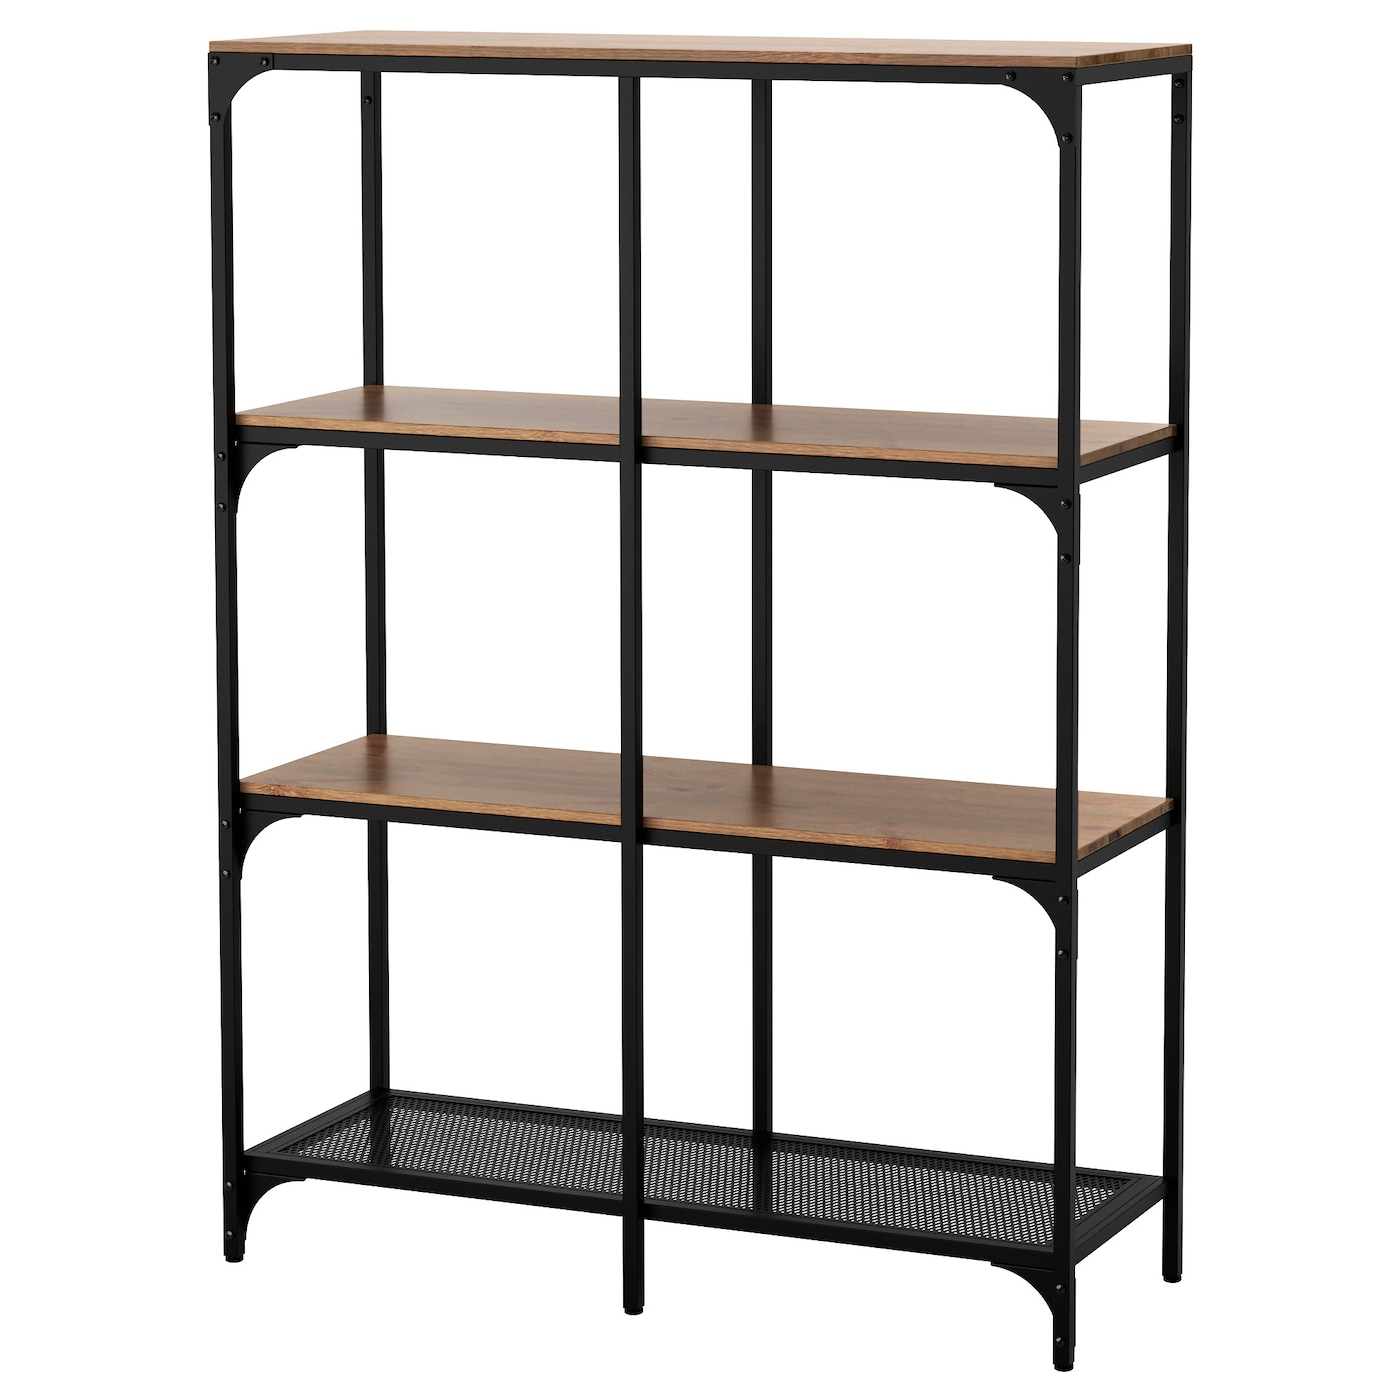 fj llbo shelving unit black 100x136 cm ikea